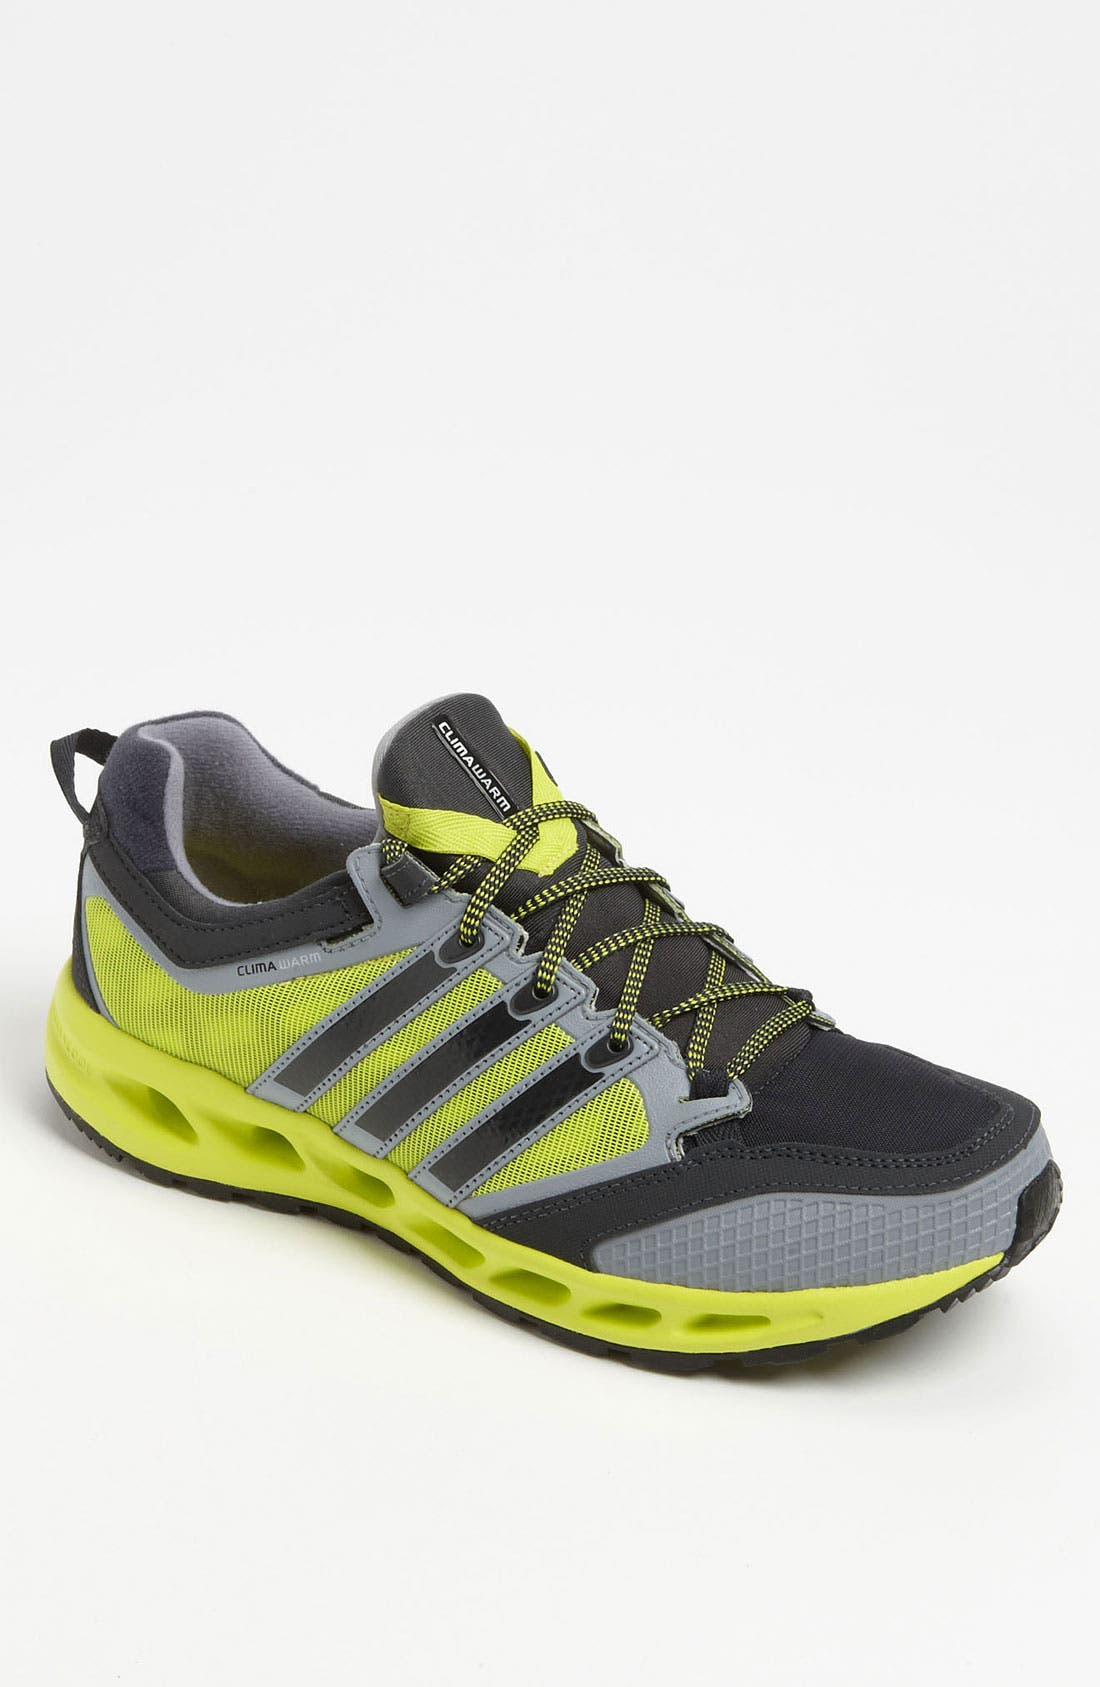 Alternate Image 1 Selected - adidas 'Tempest' Running Shoe (Men)